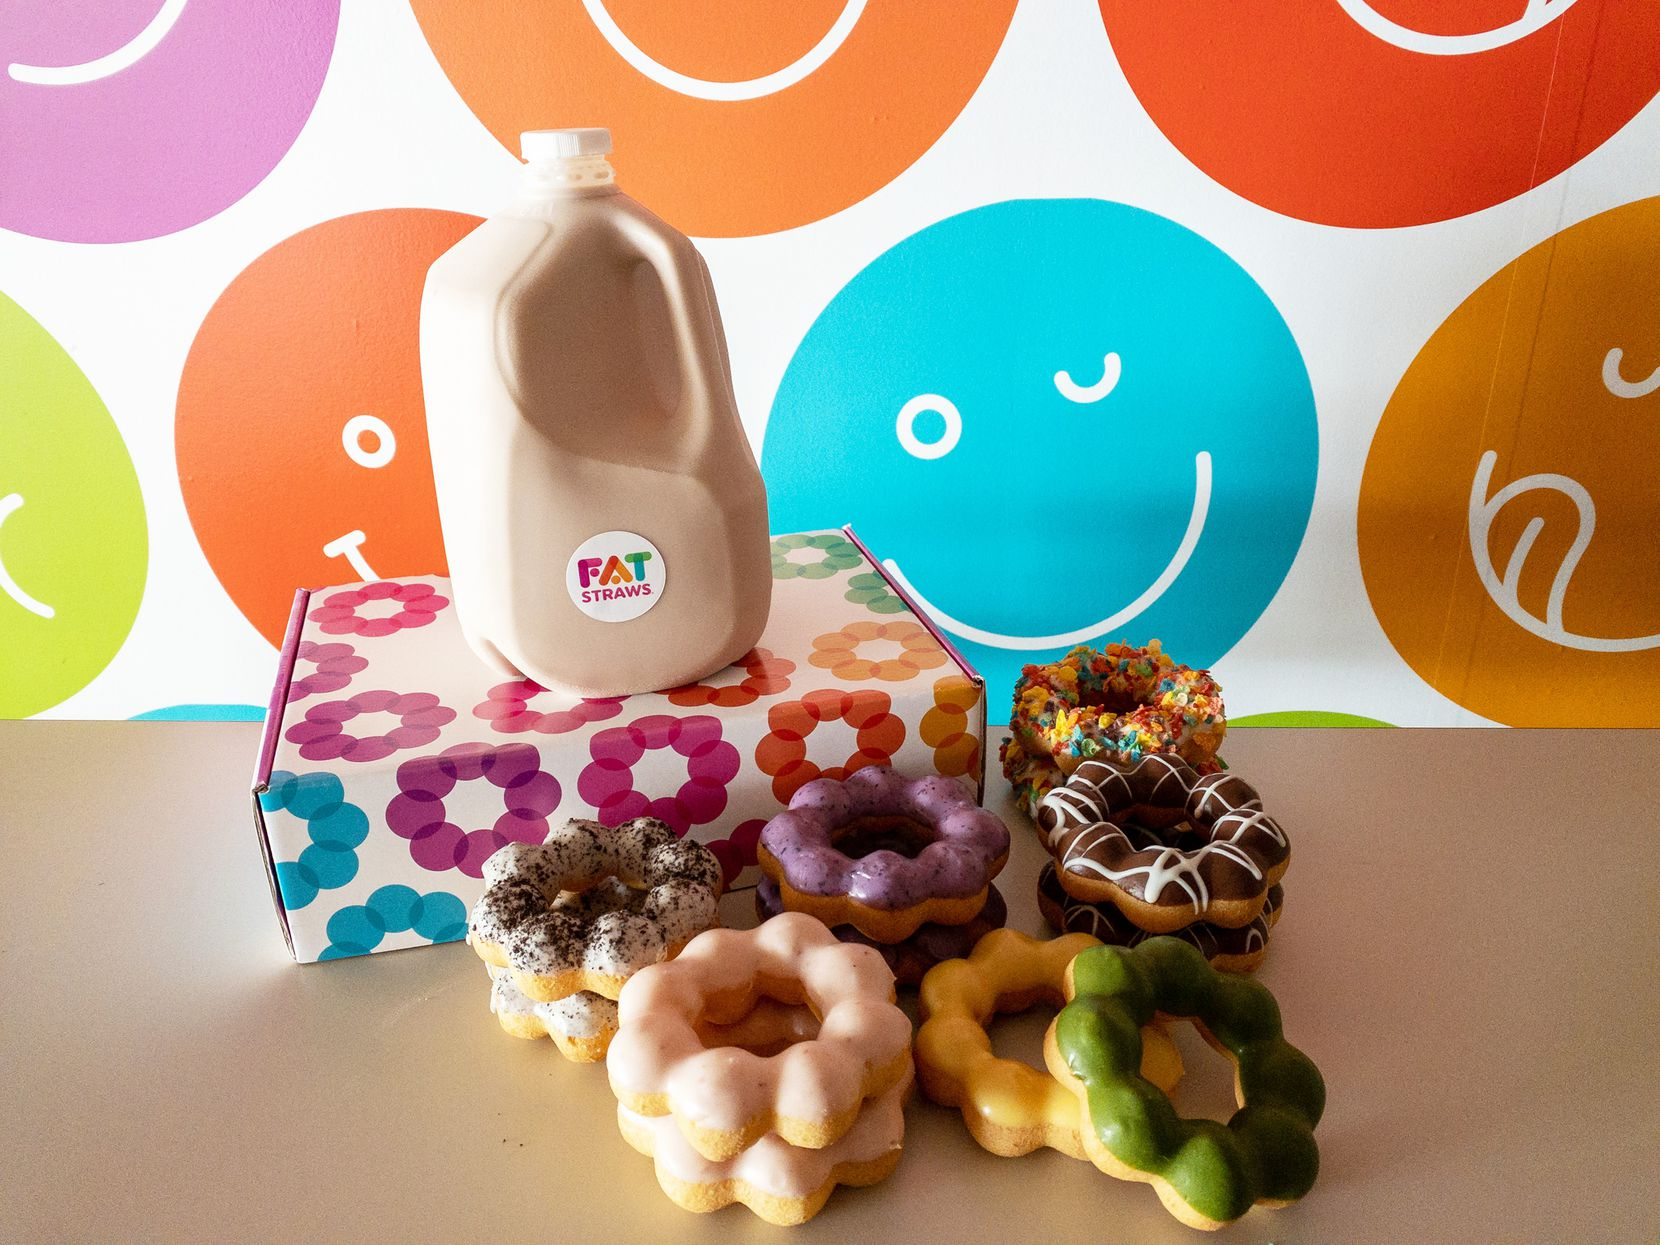 Fat Straws offers Smile Pack orders for $50 that include 1 gallon of tea or coffee and a dozen Chewy Puffs.